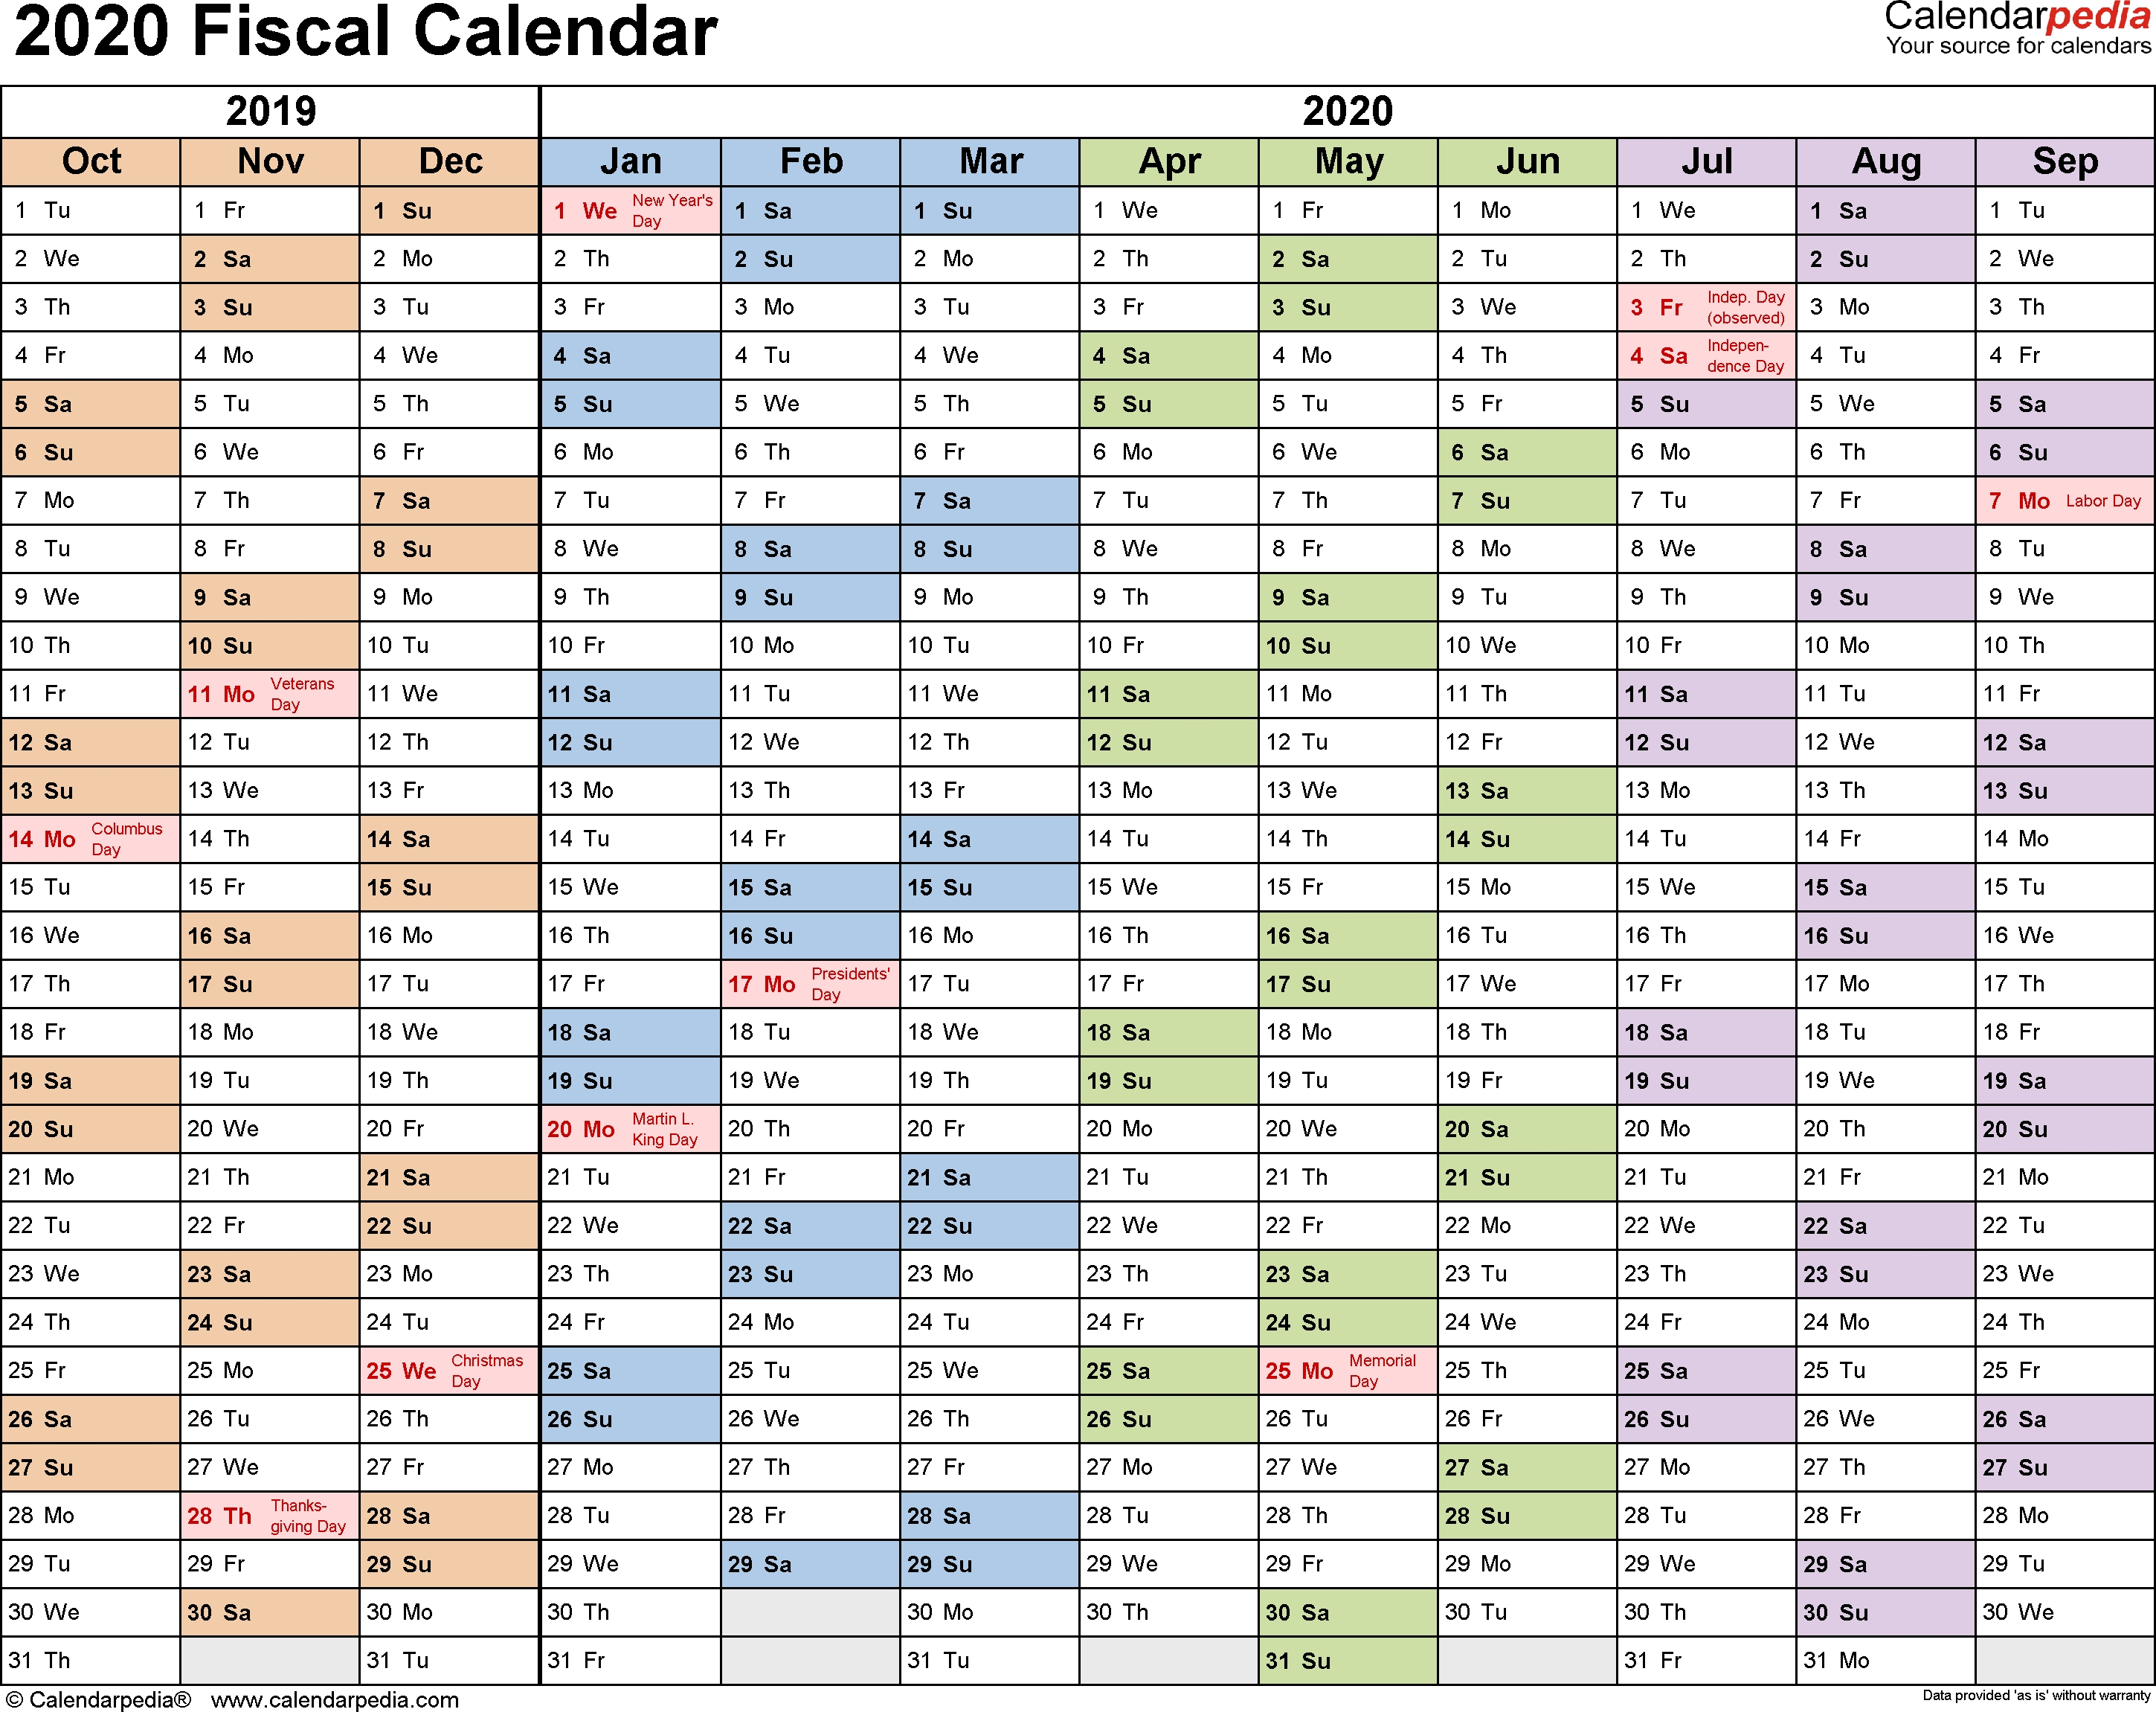 Fiscal Calendars 2020 - Free Printable Excel Templates intended for Fiscal Calander 2020 Week Numbers